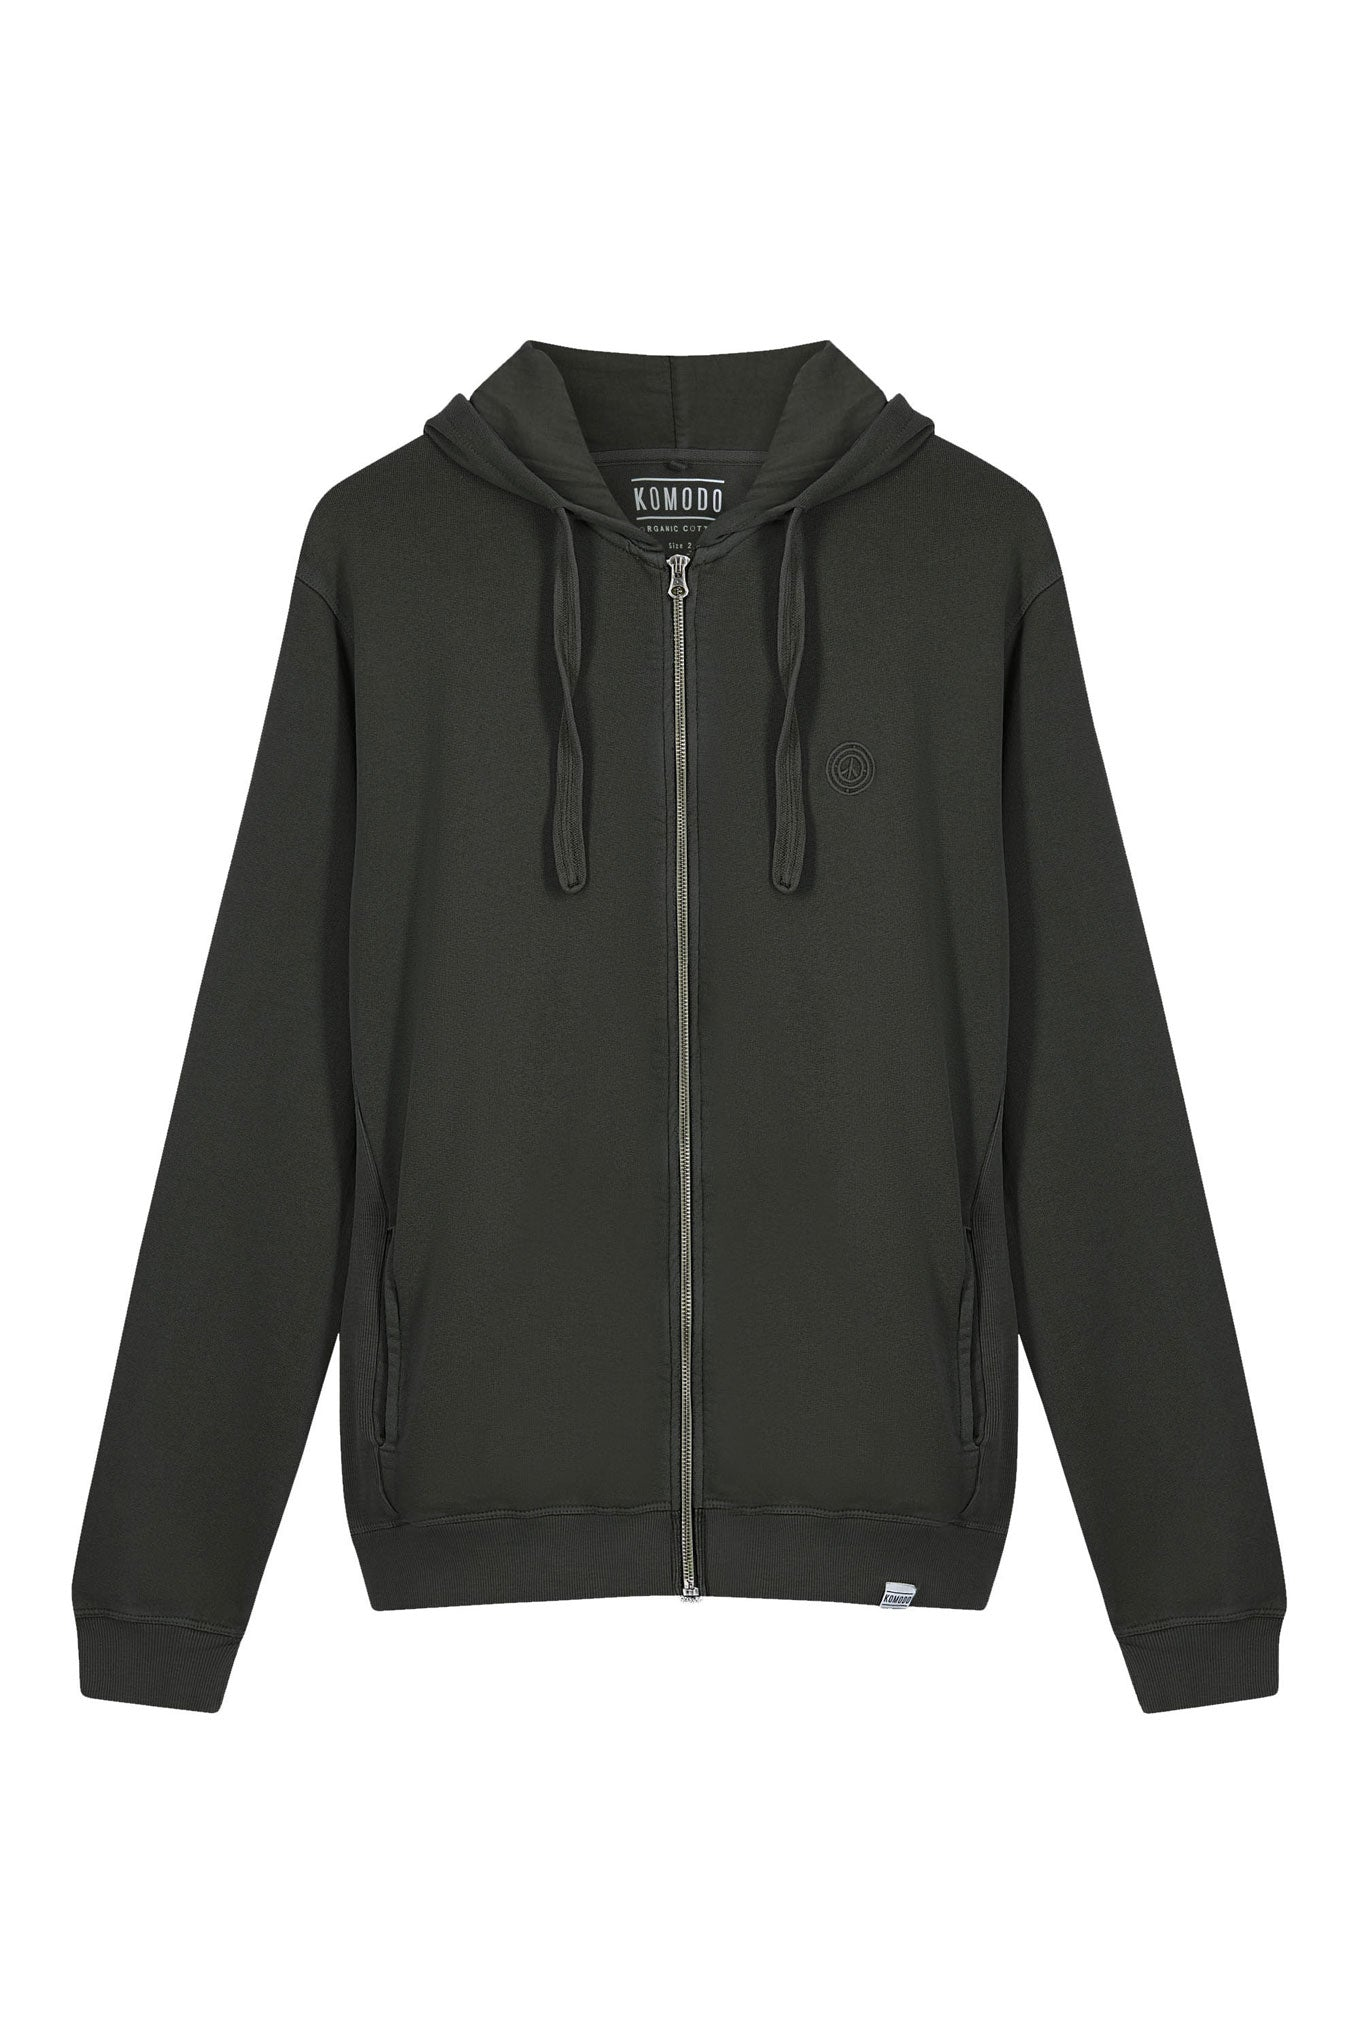 APOLLO Mens Organic Cotton Zip Hoodie Black